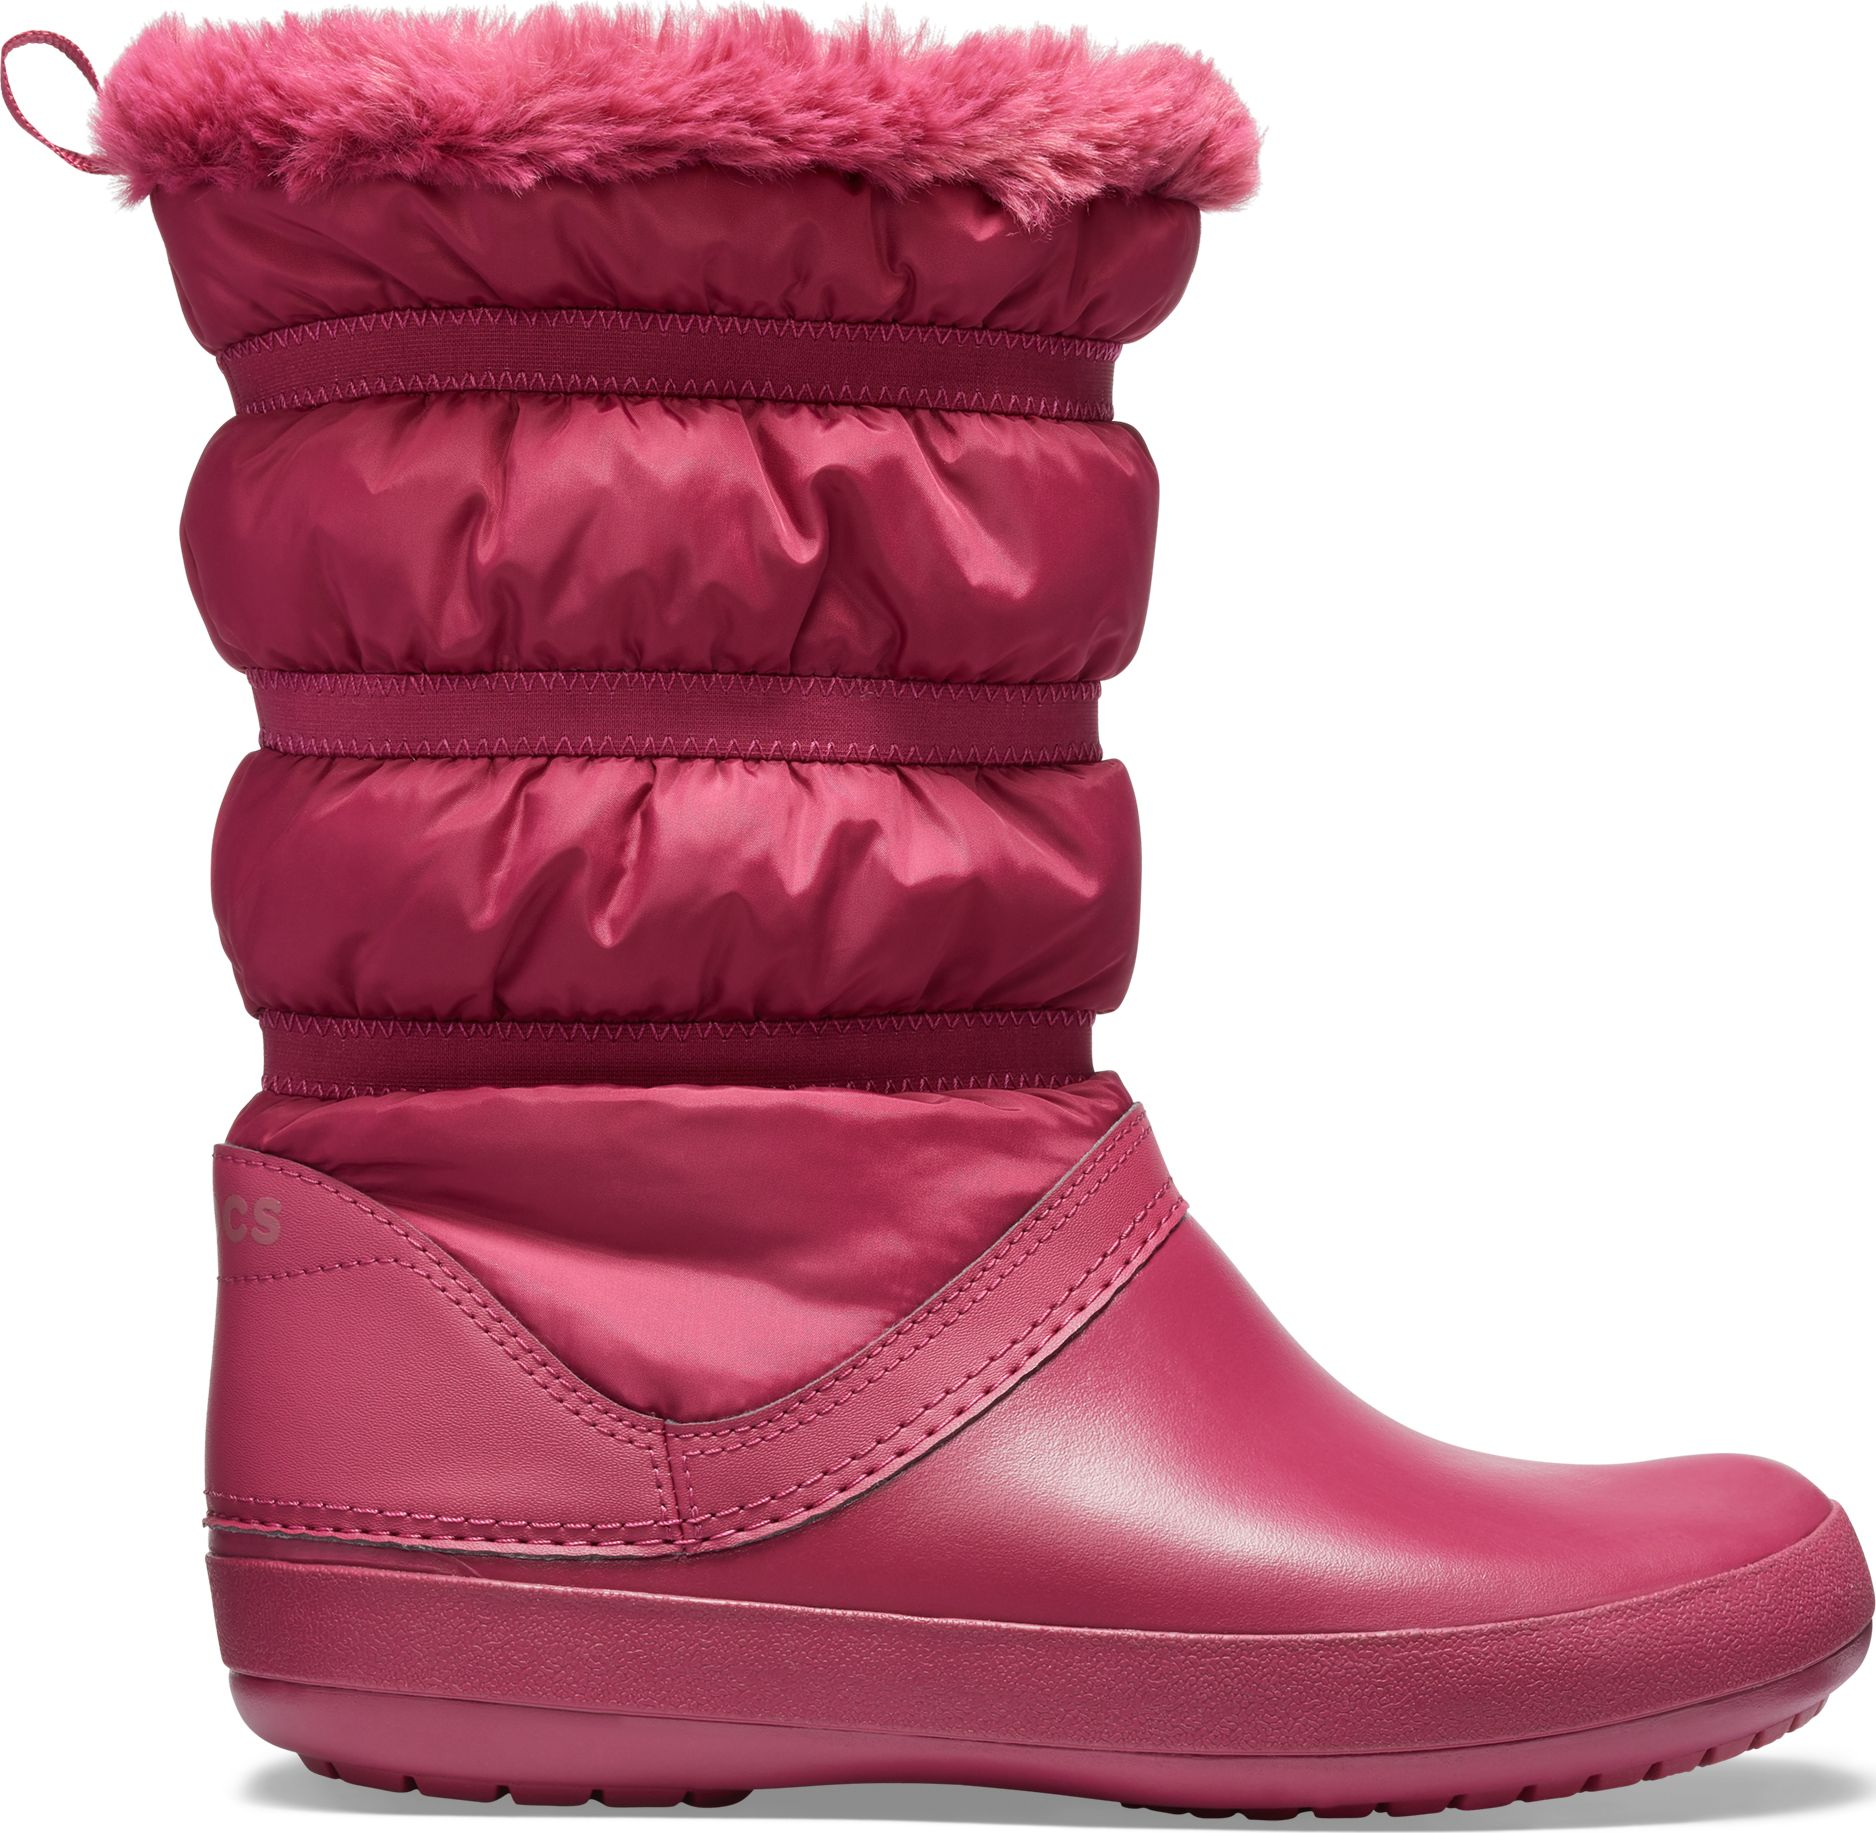 Crocs™ Women's Crocband Winter Boot Pomegranate 37,5